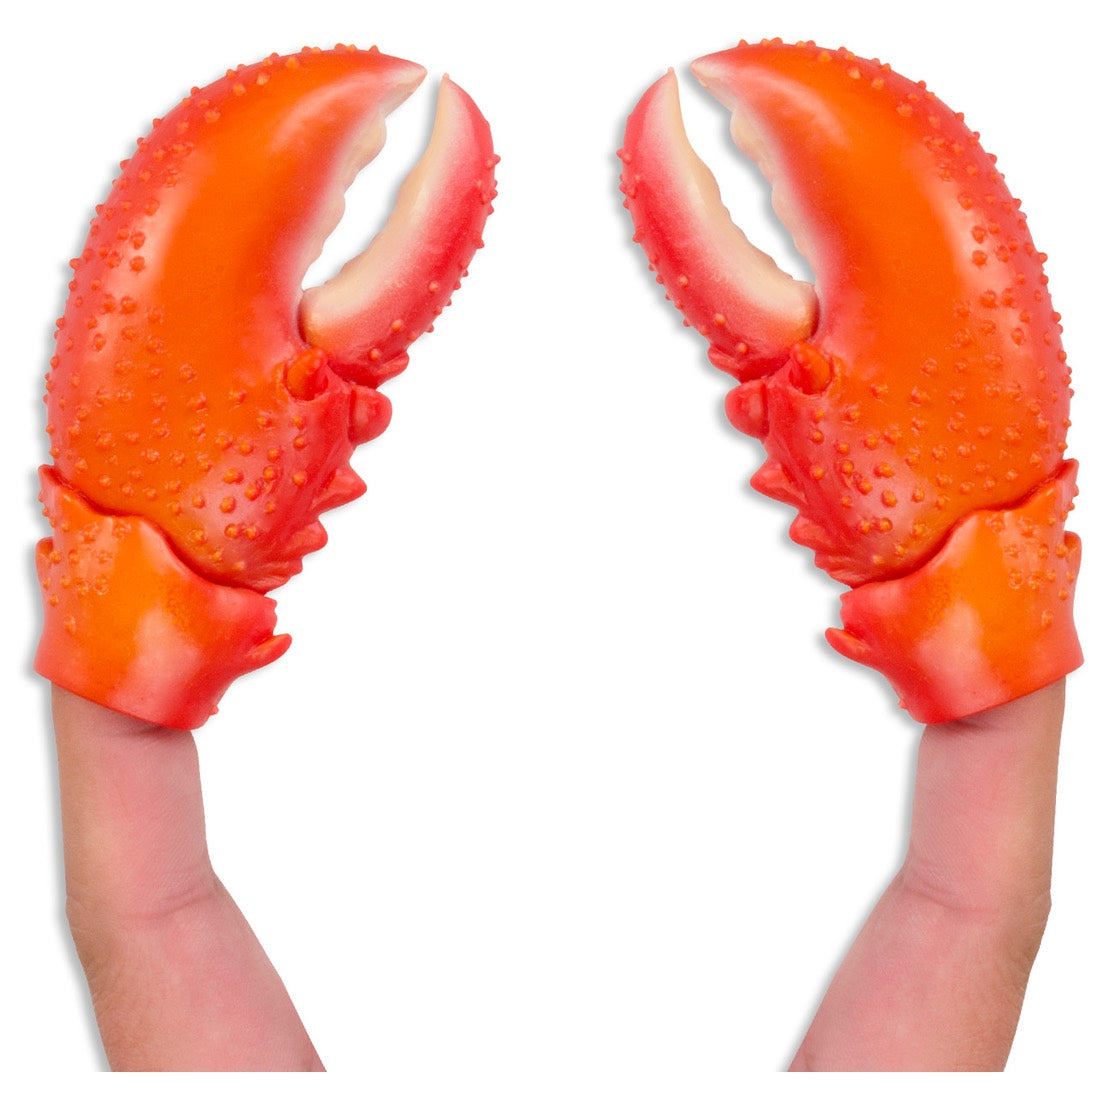 Finger Lobster Claws pack of 2